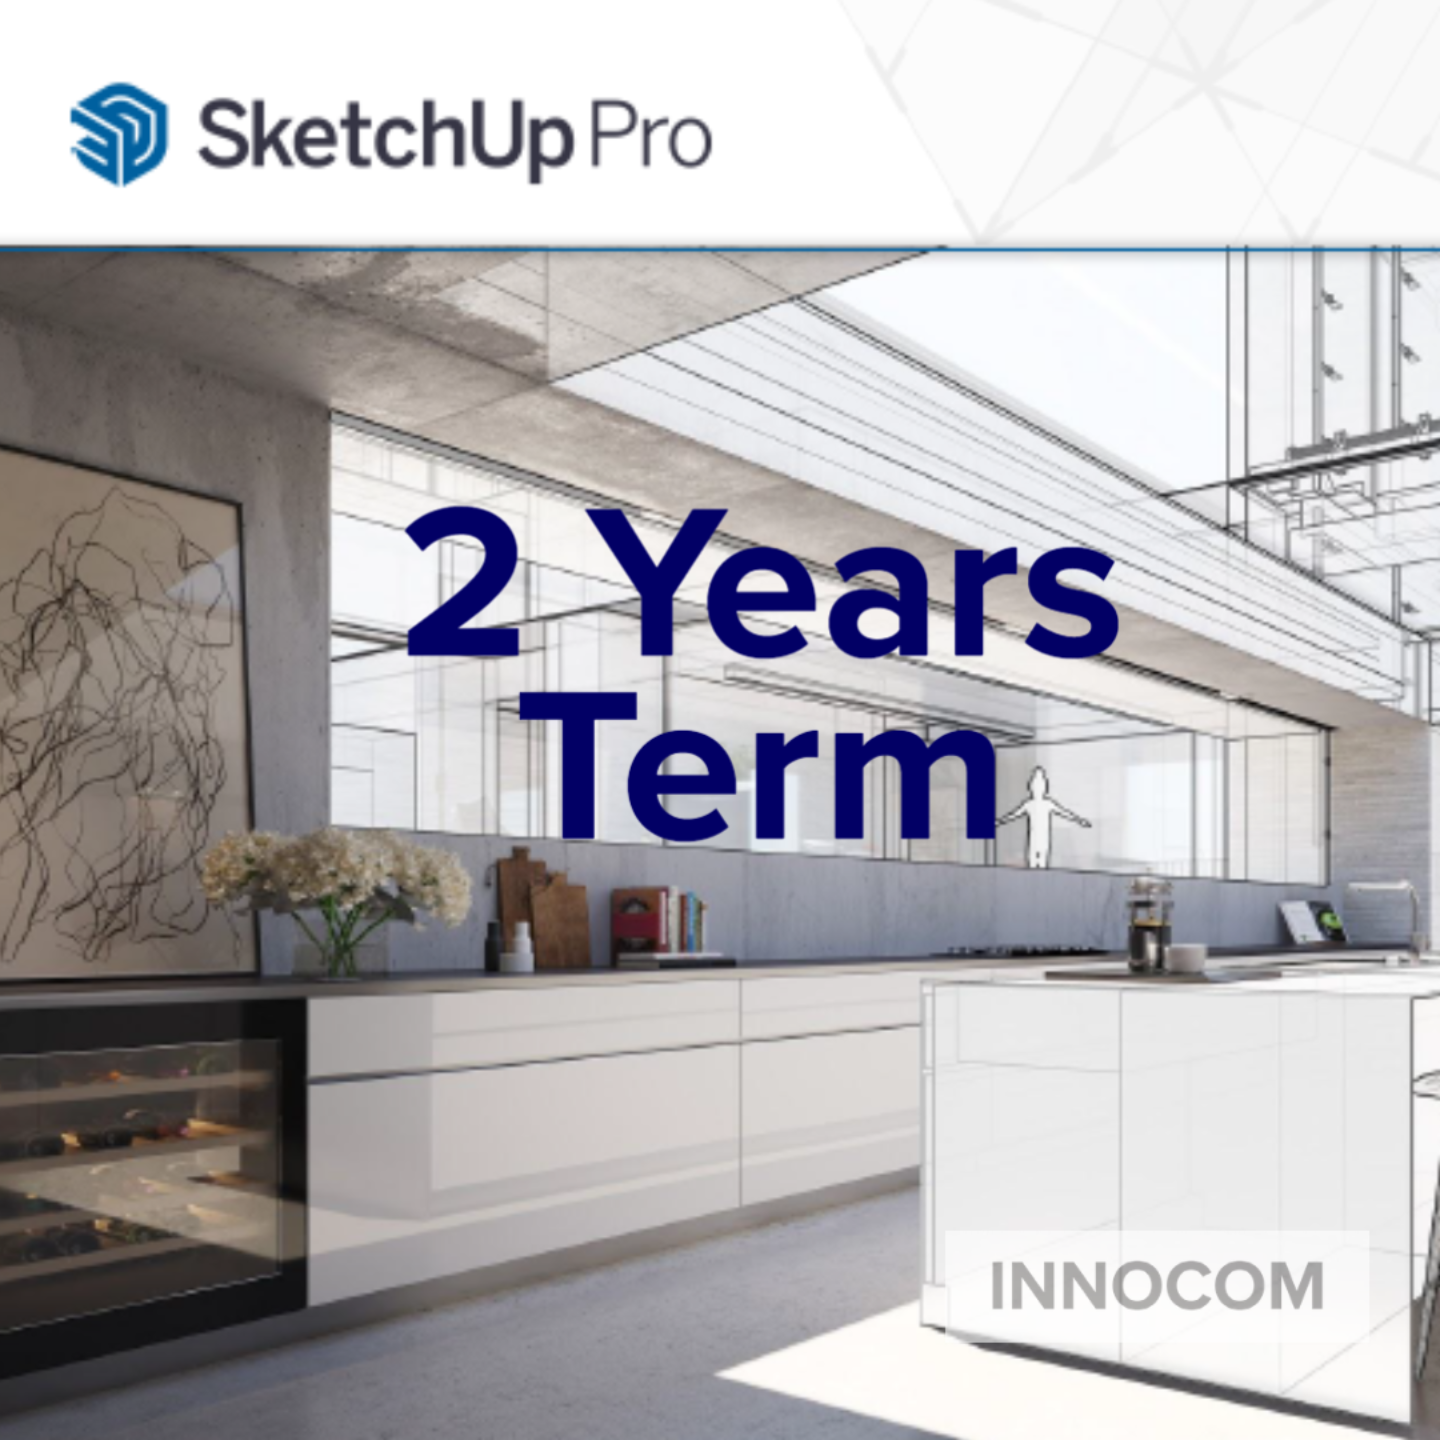 SketchUp Pro 2021-Annual (2 Years Term)